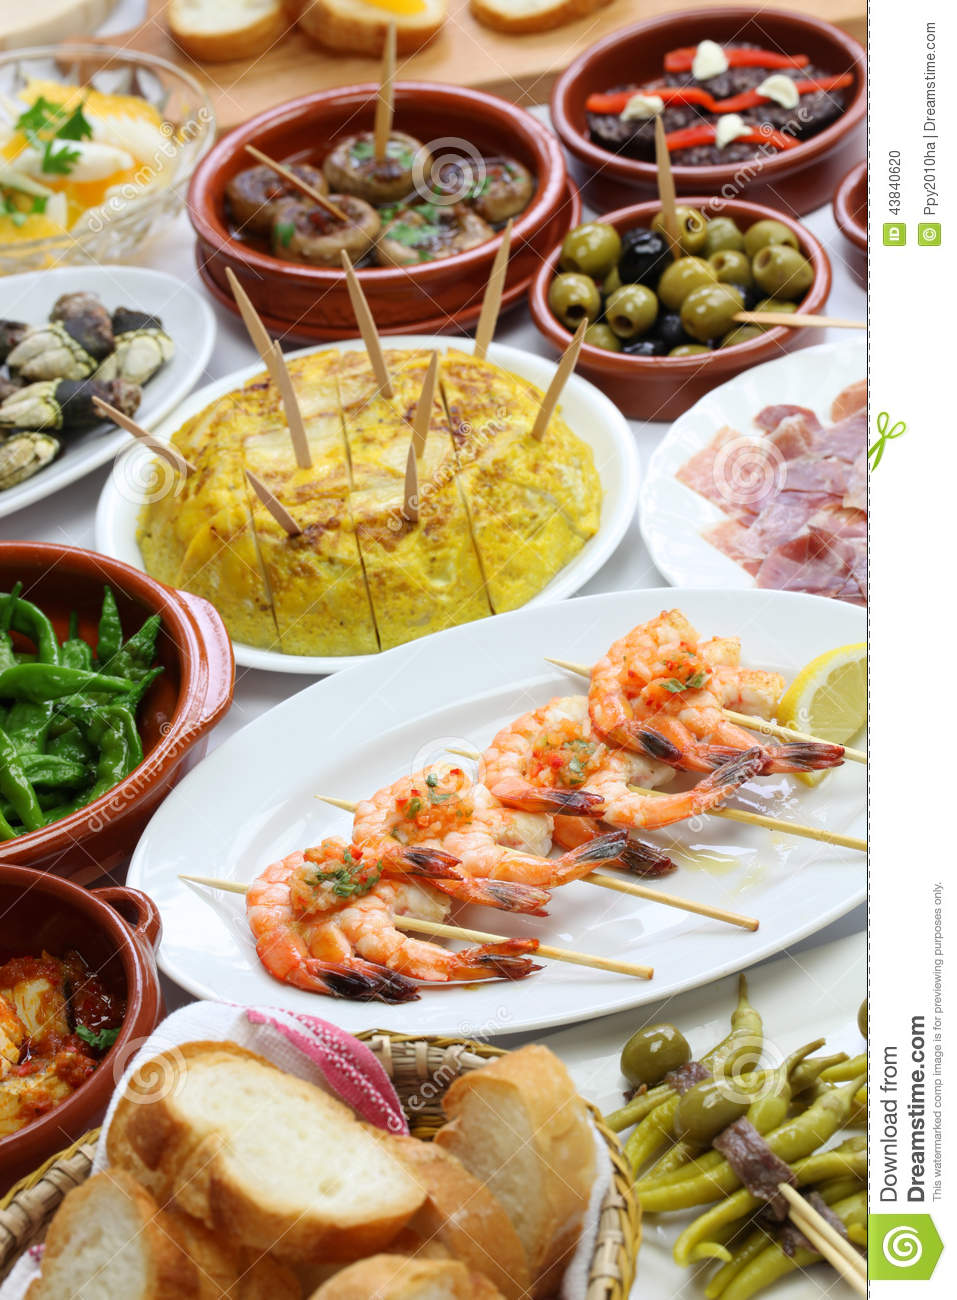 Spanish tapas bar food stock photo image 43840620 for Cuisine bar tapas